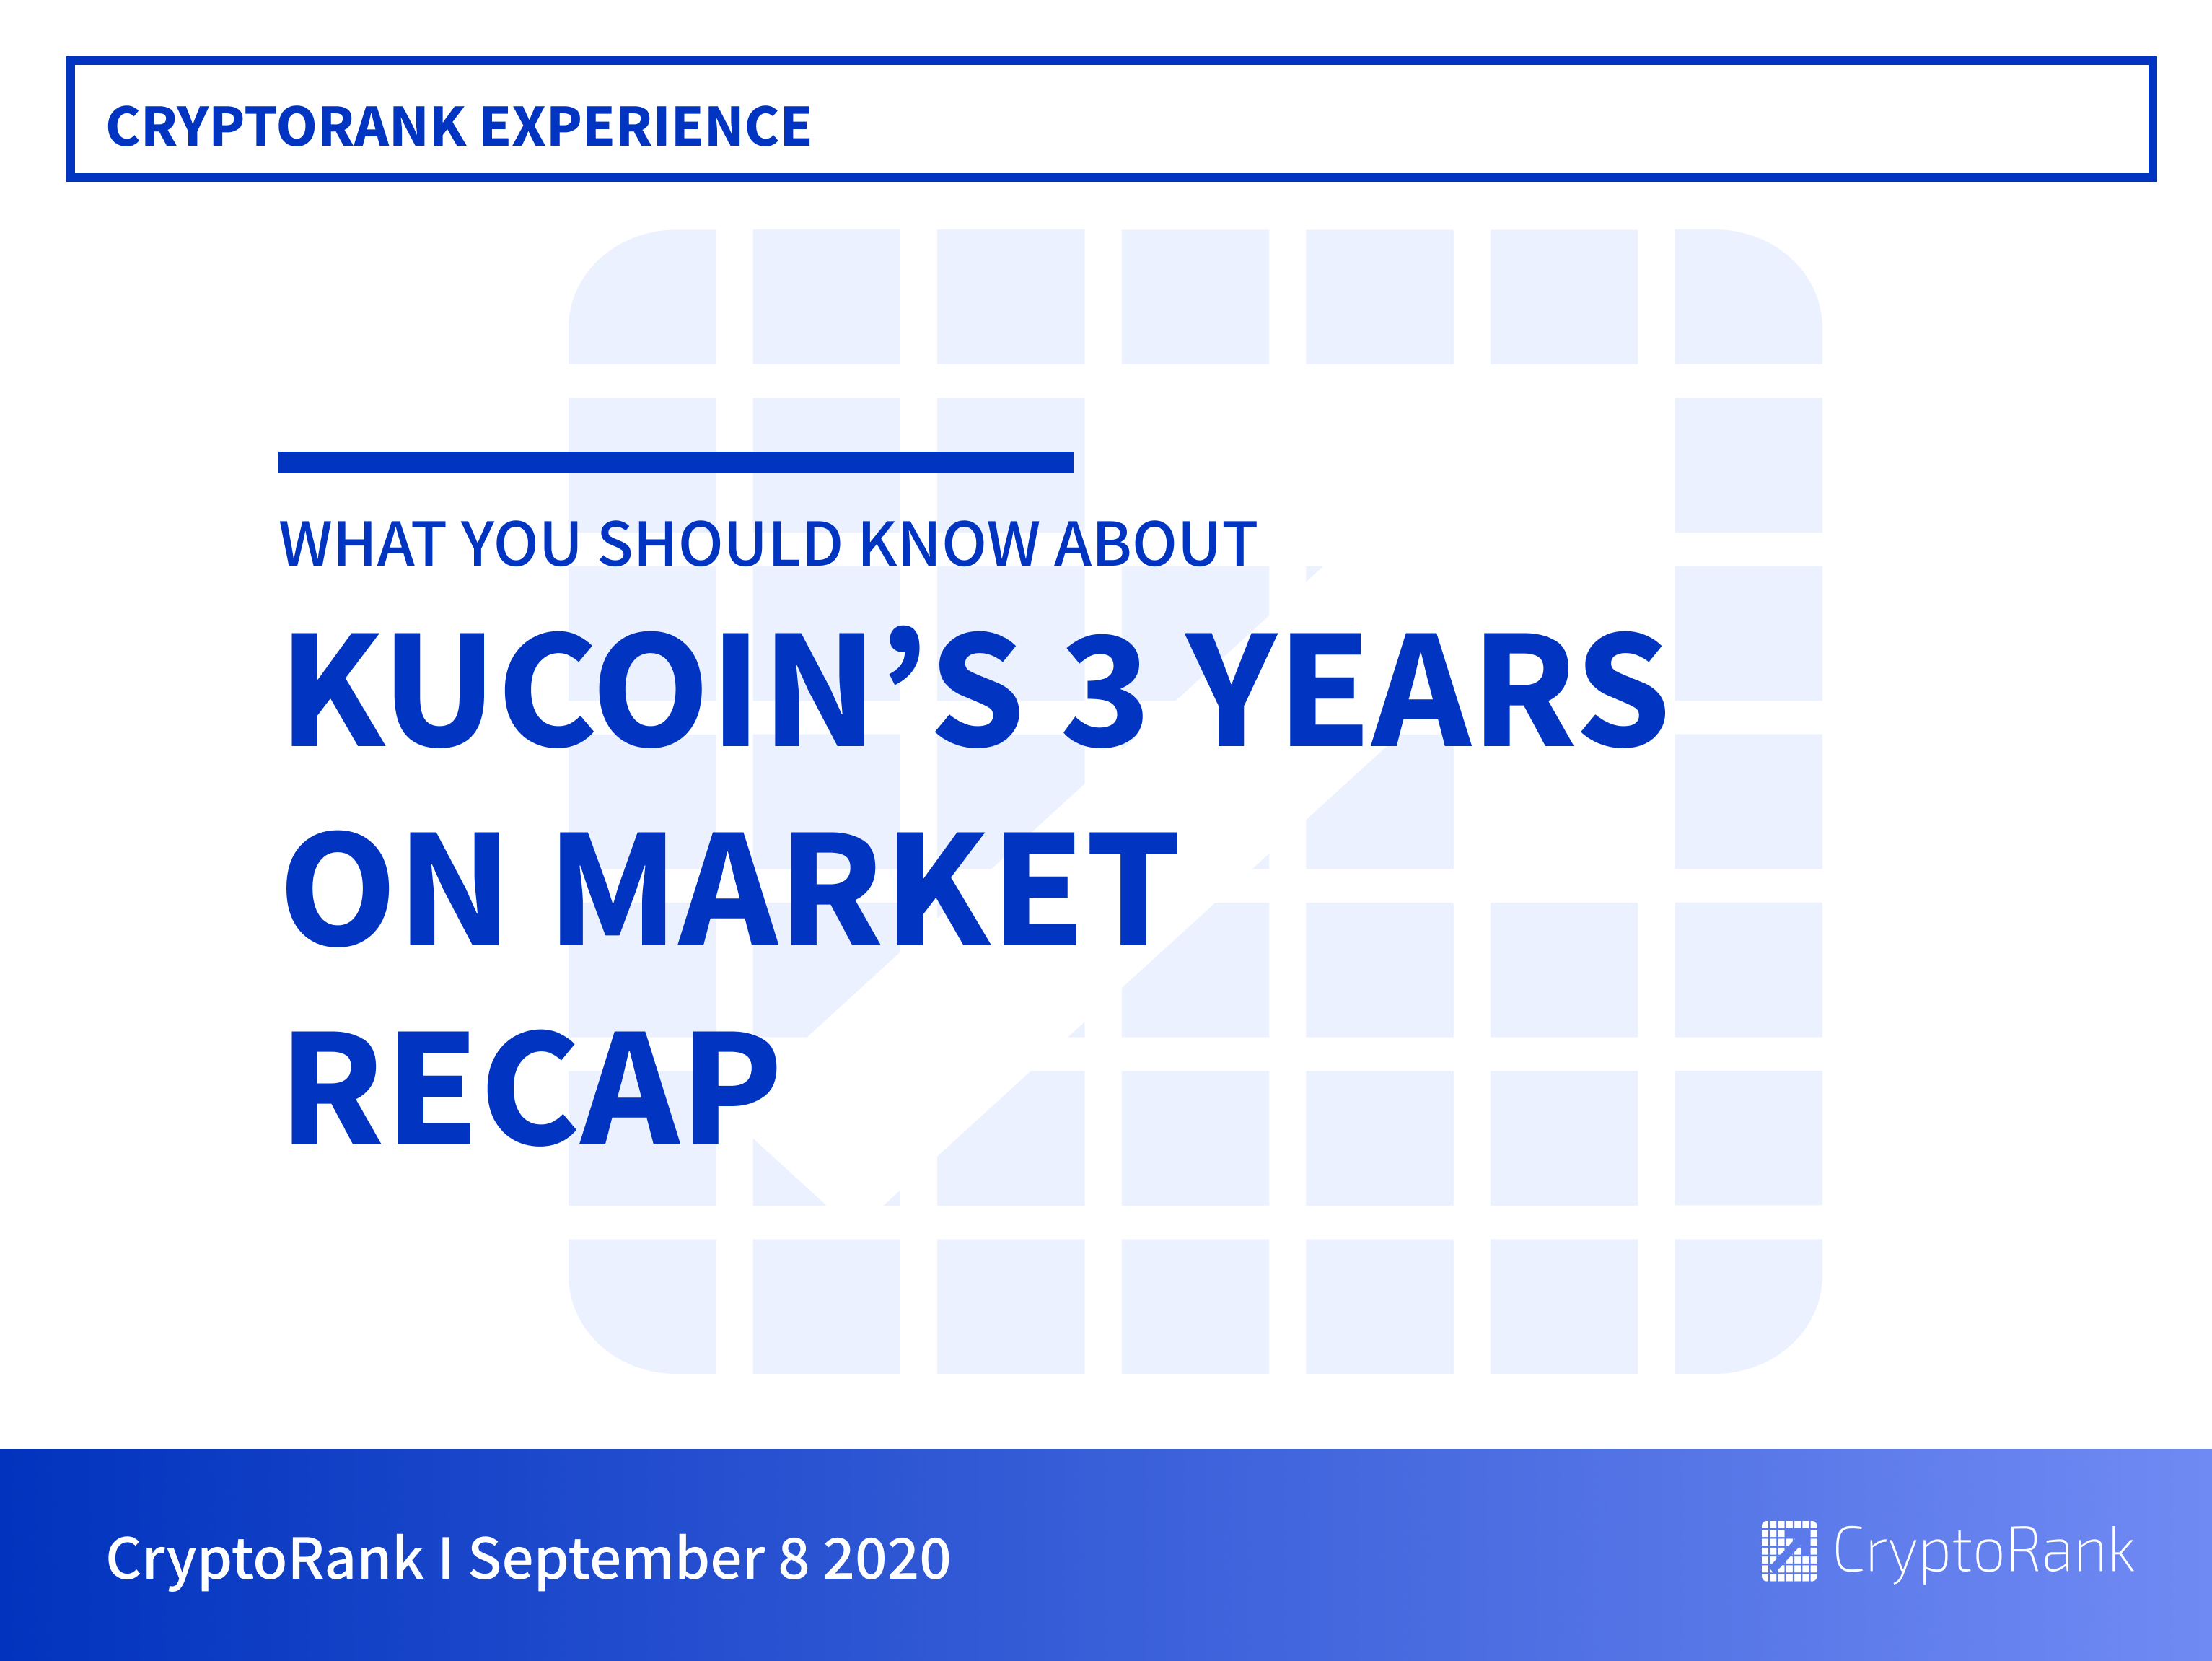 KuCoin 3 Years Round-up: main products and achievements